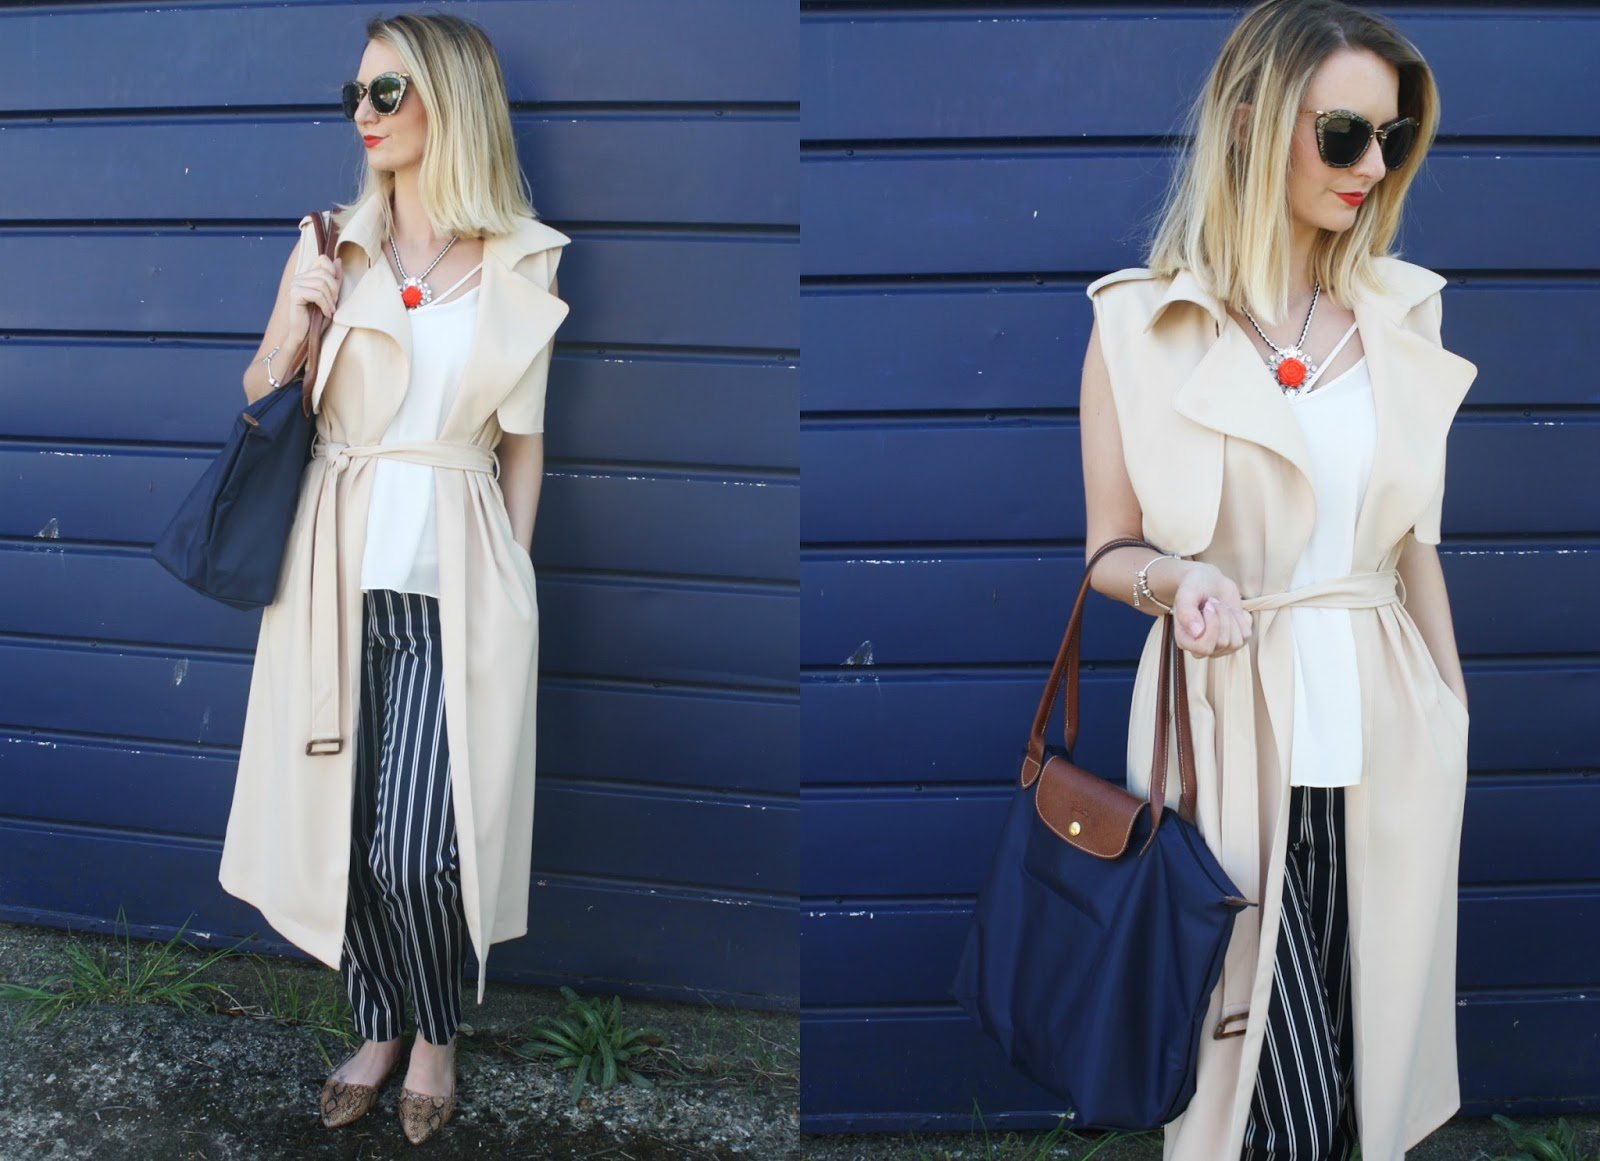 Camel trench coat styled with navy and red accessories